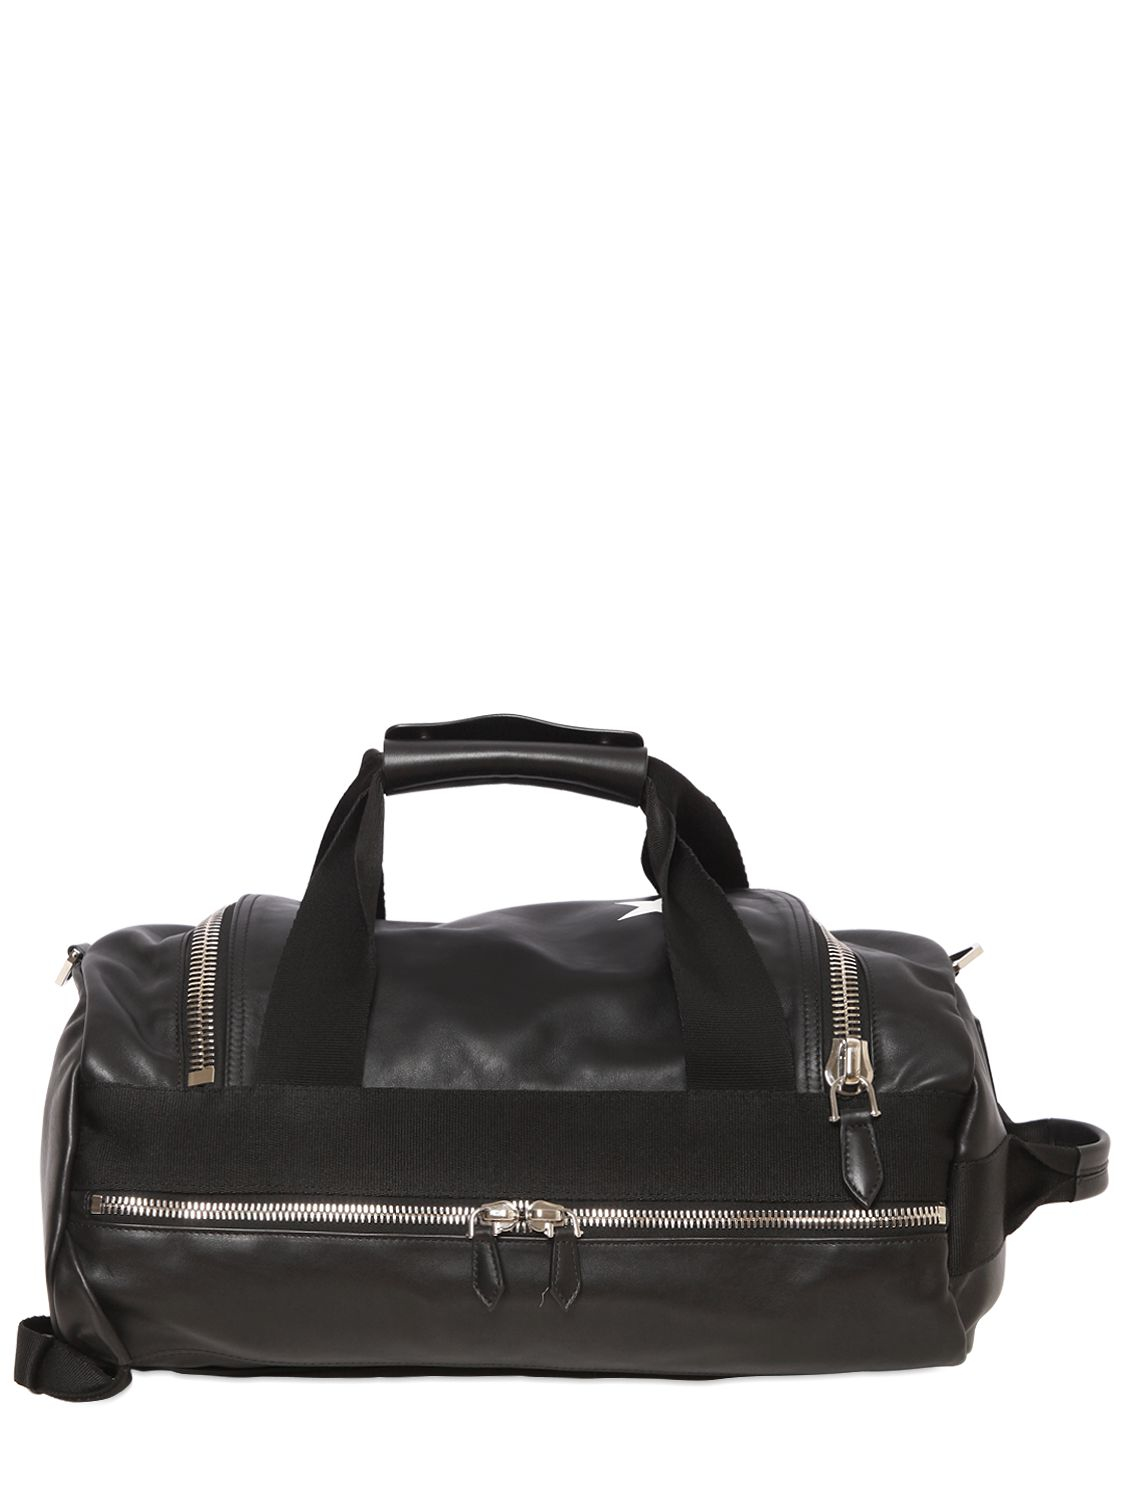 b8398f6717 Givenchy Star Printed Leather Backpack in Black for Men - Lyst